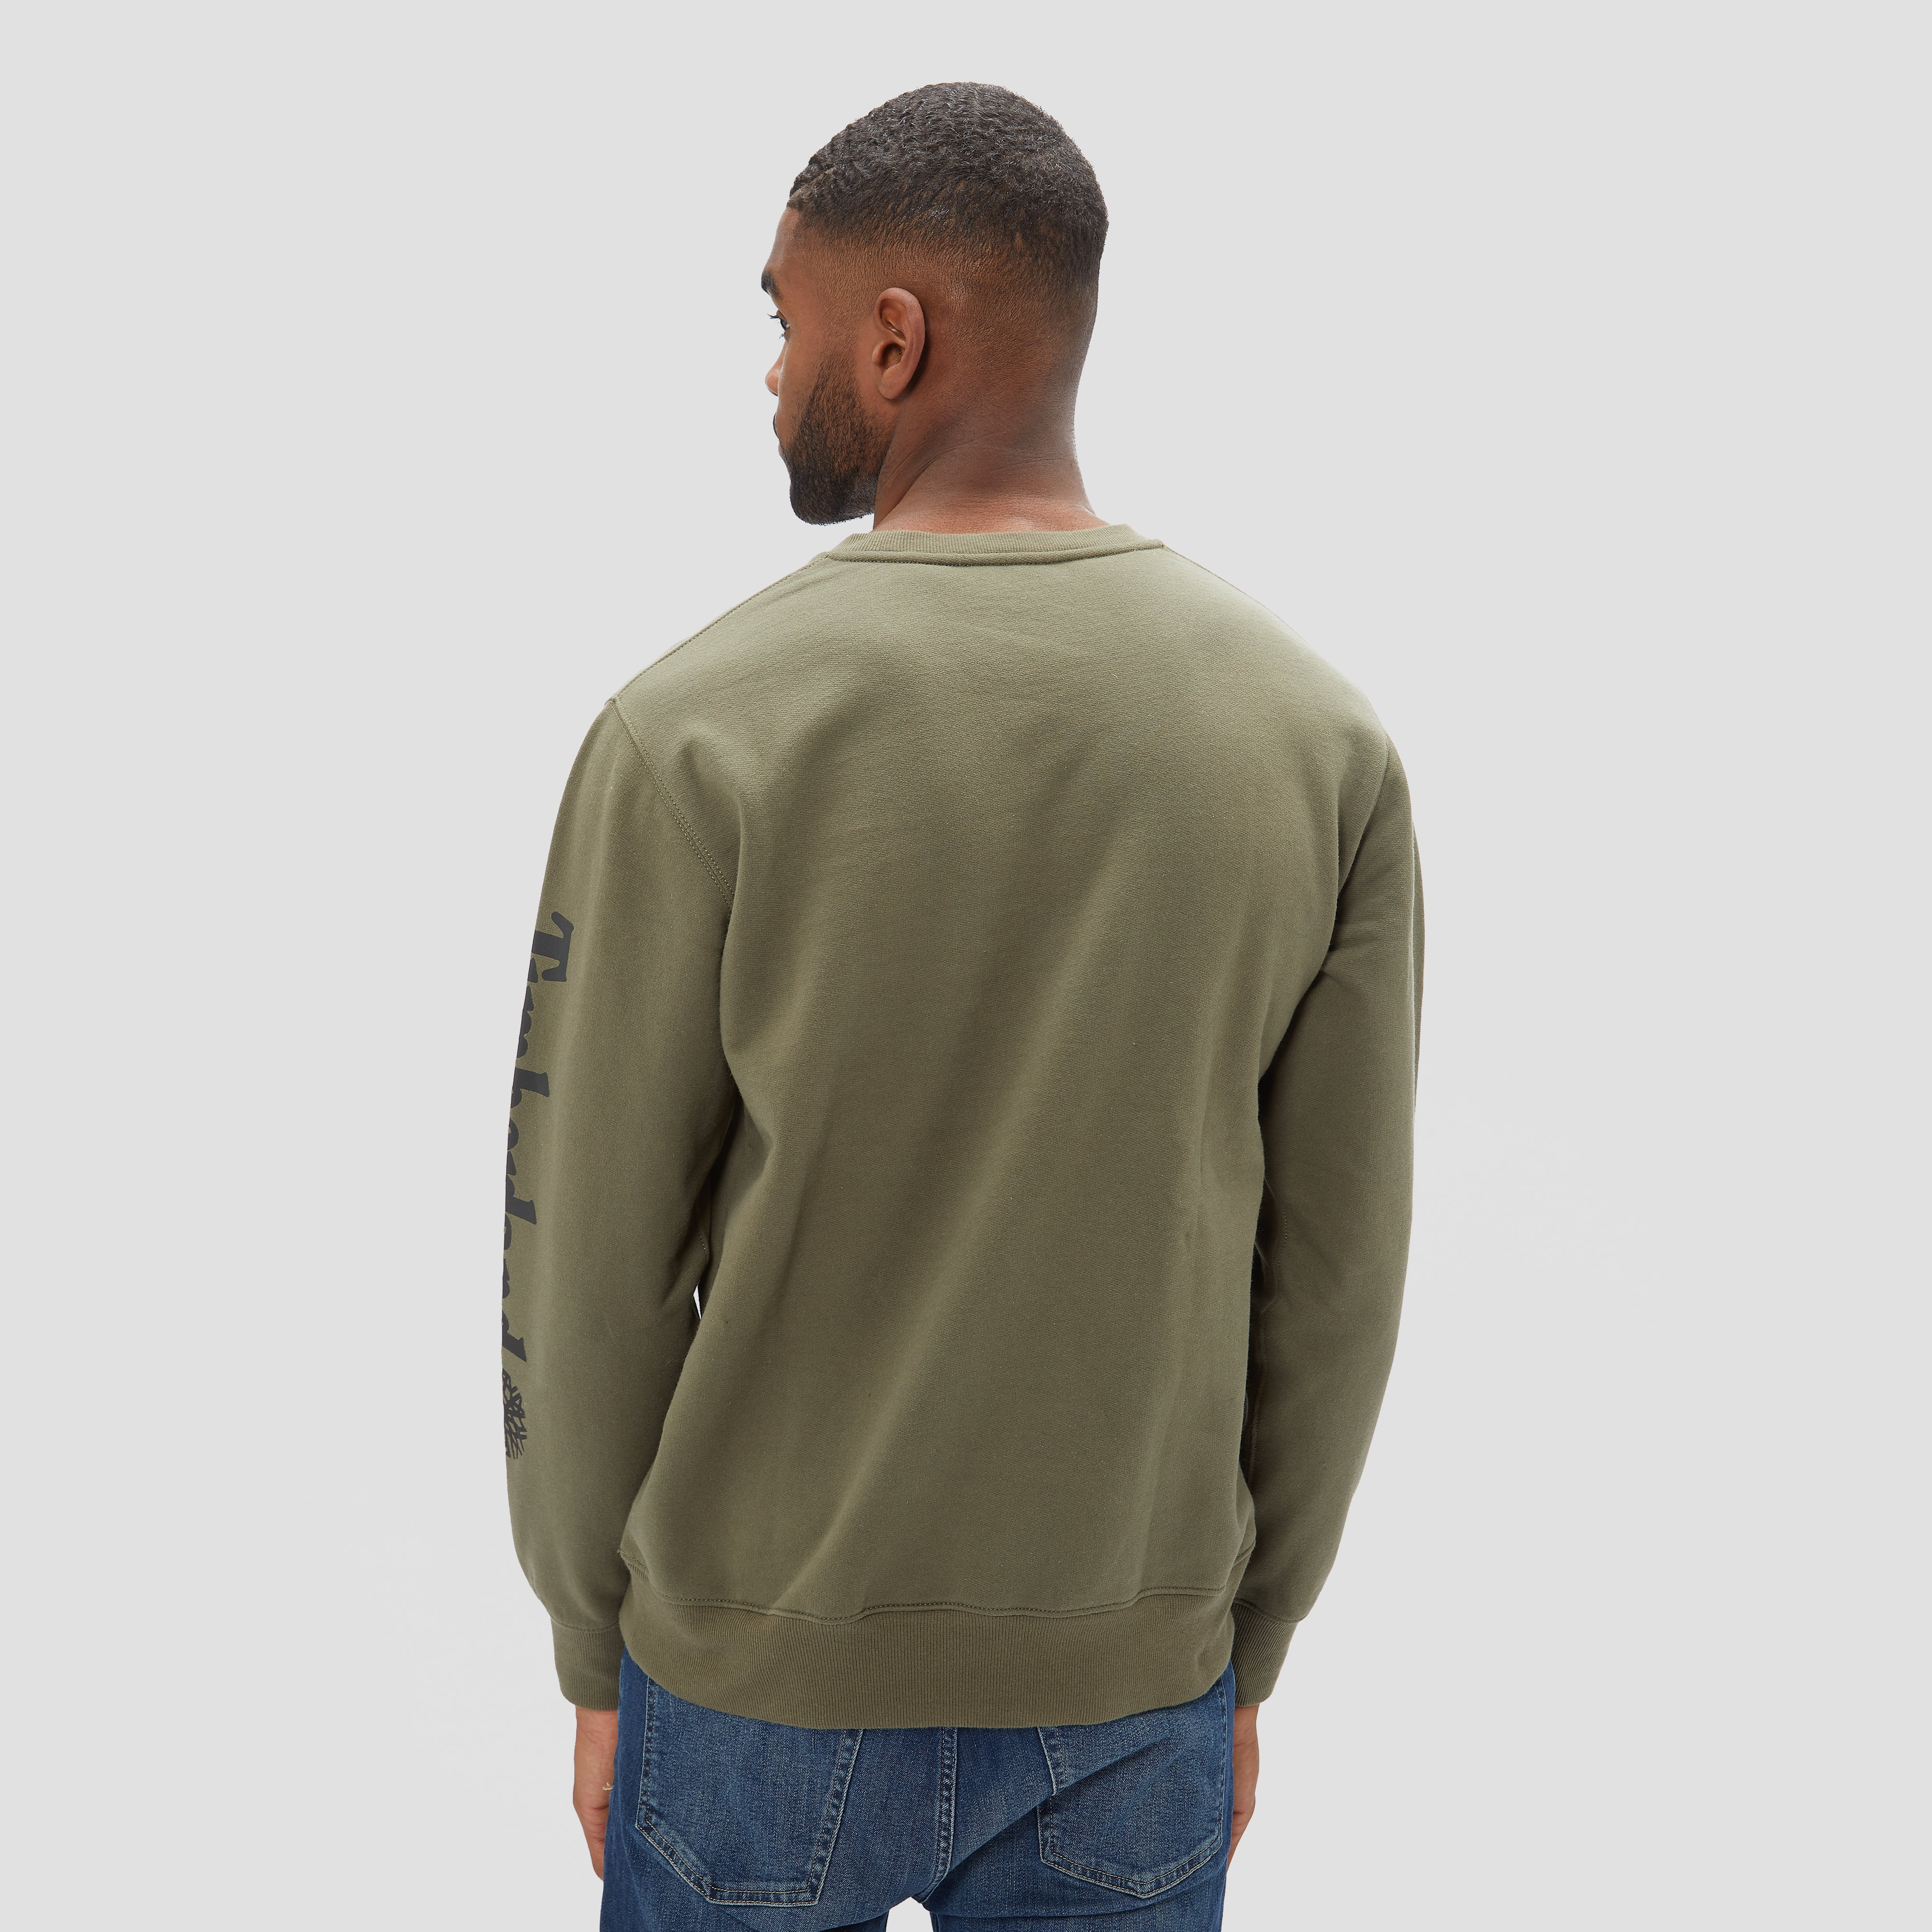 TIMBERLAND CREW SEASONAL OUTDOOR SWEATER GROEN HEREN